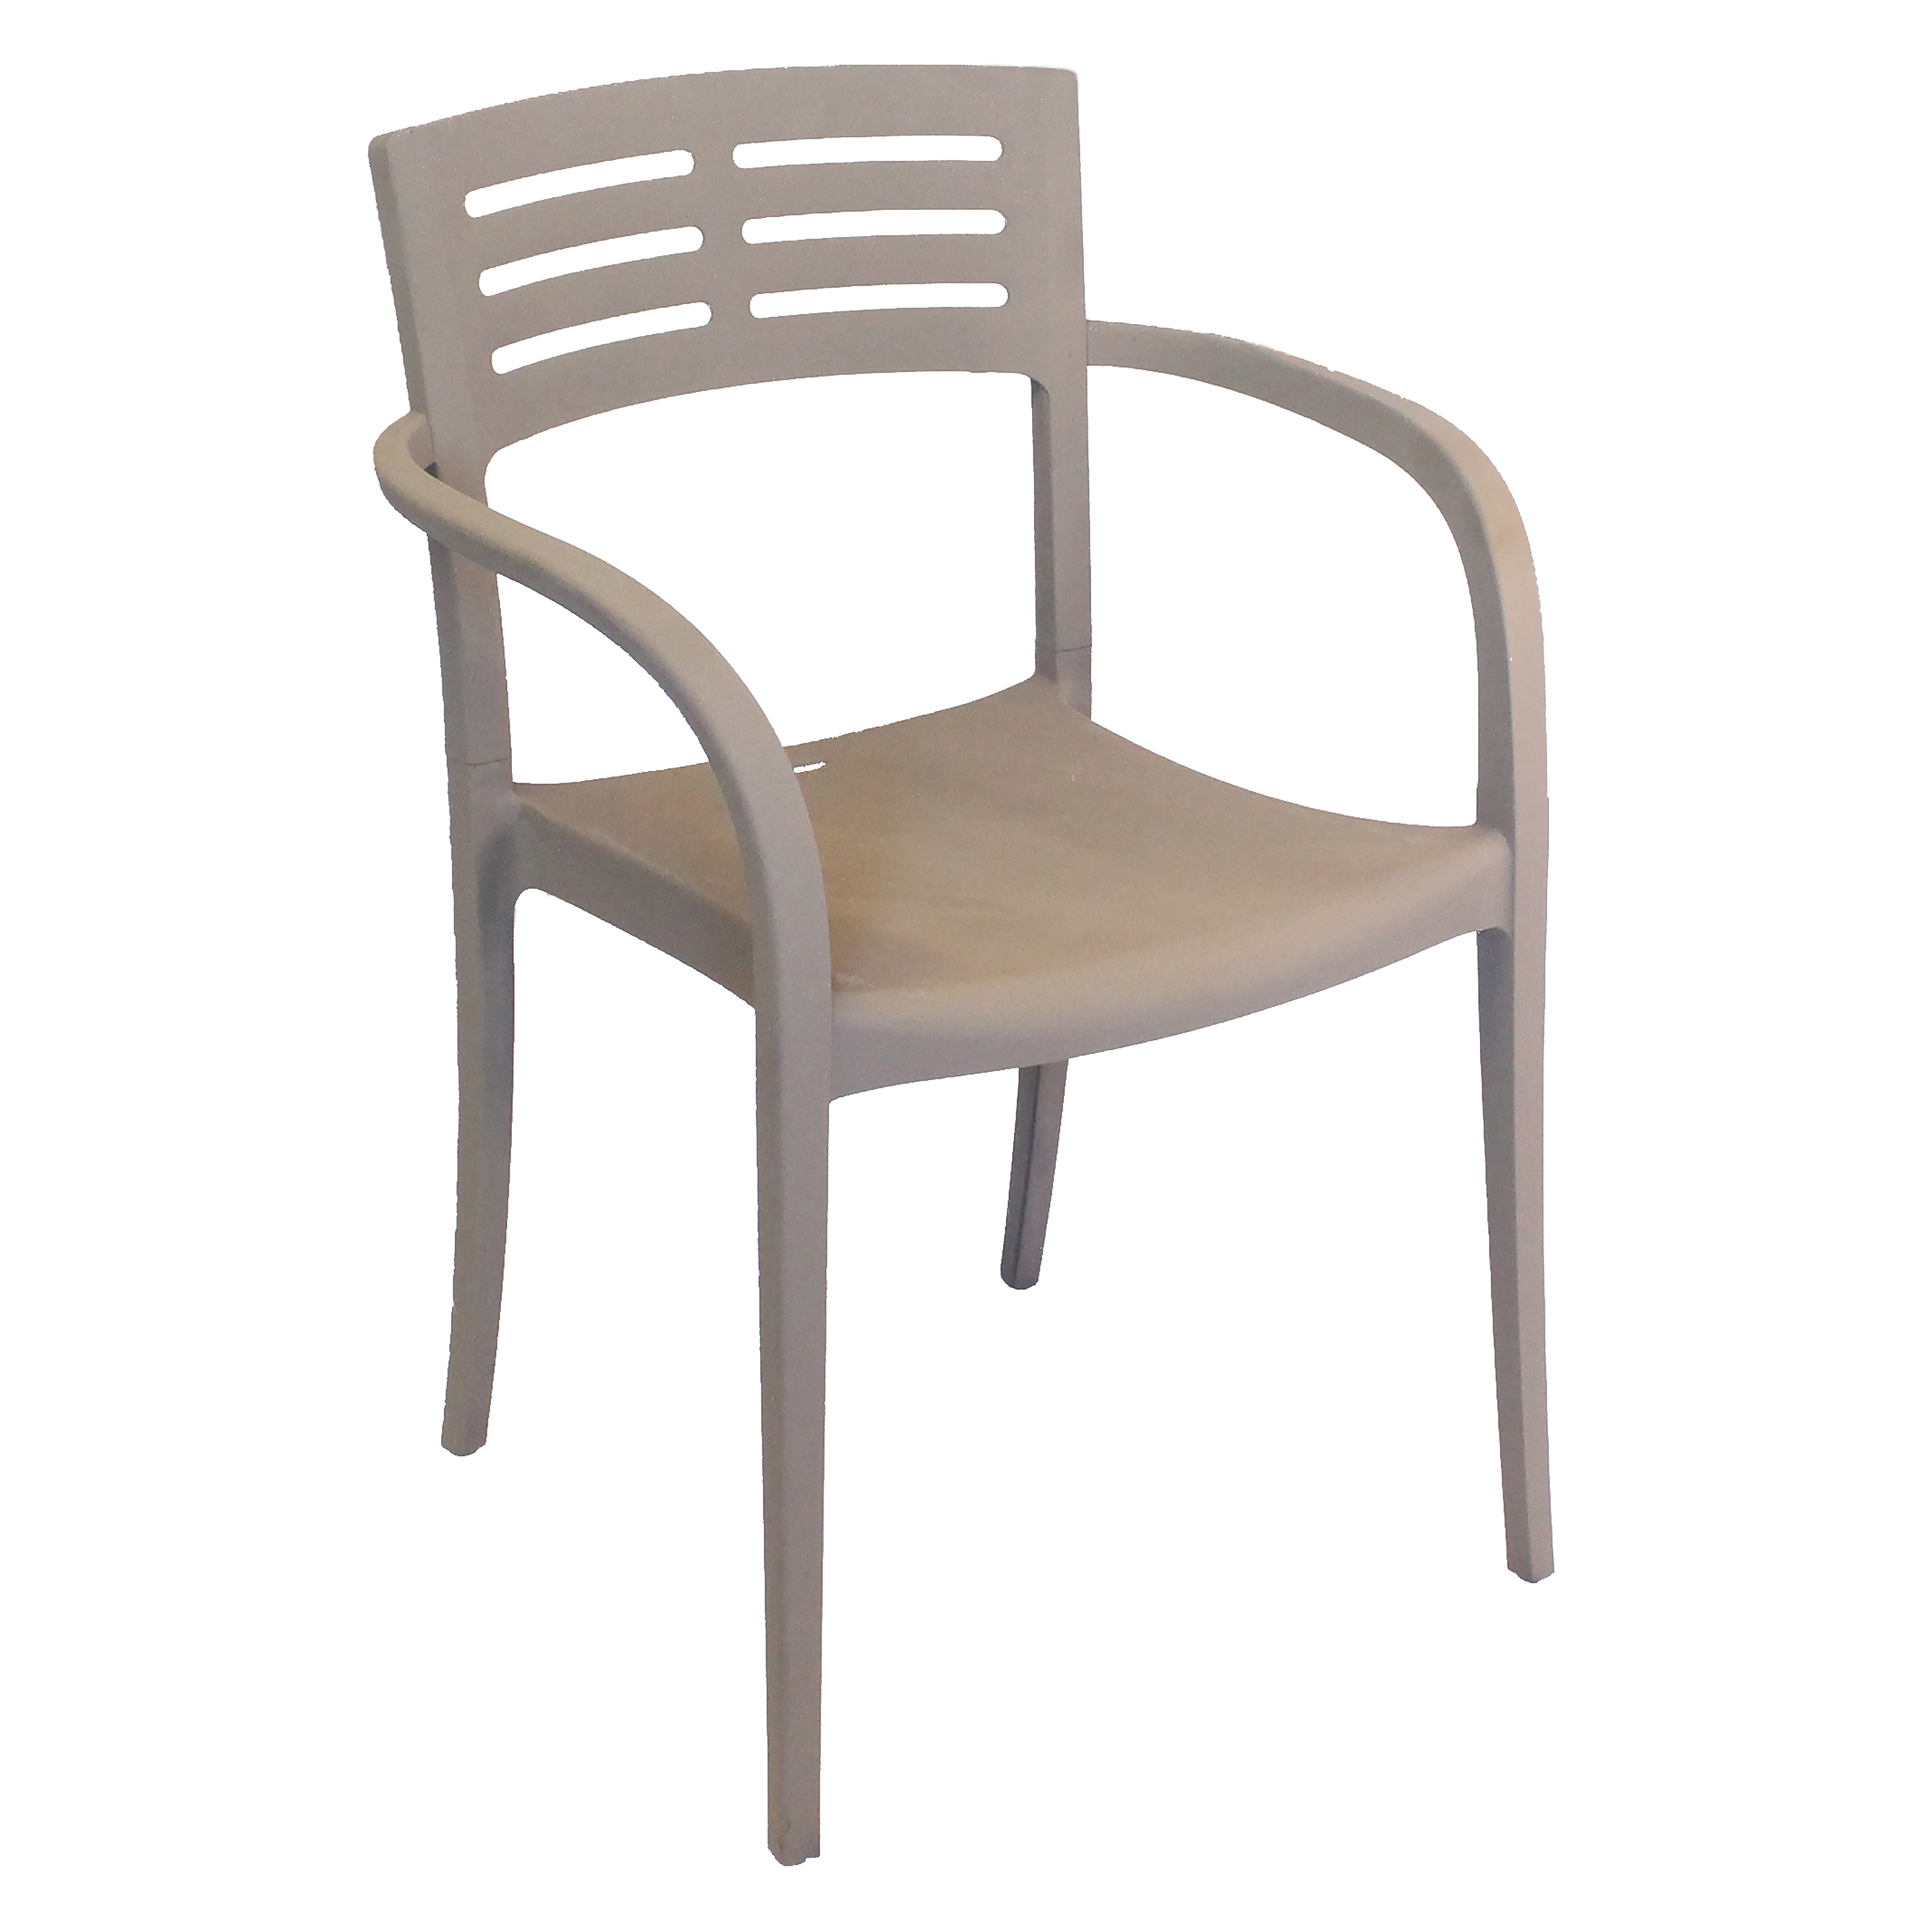 Grosfillex US336181 chair, armchair, stacking, outdoor